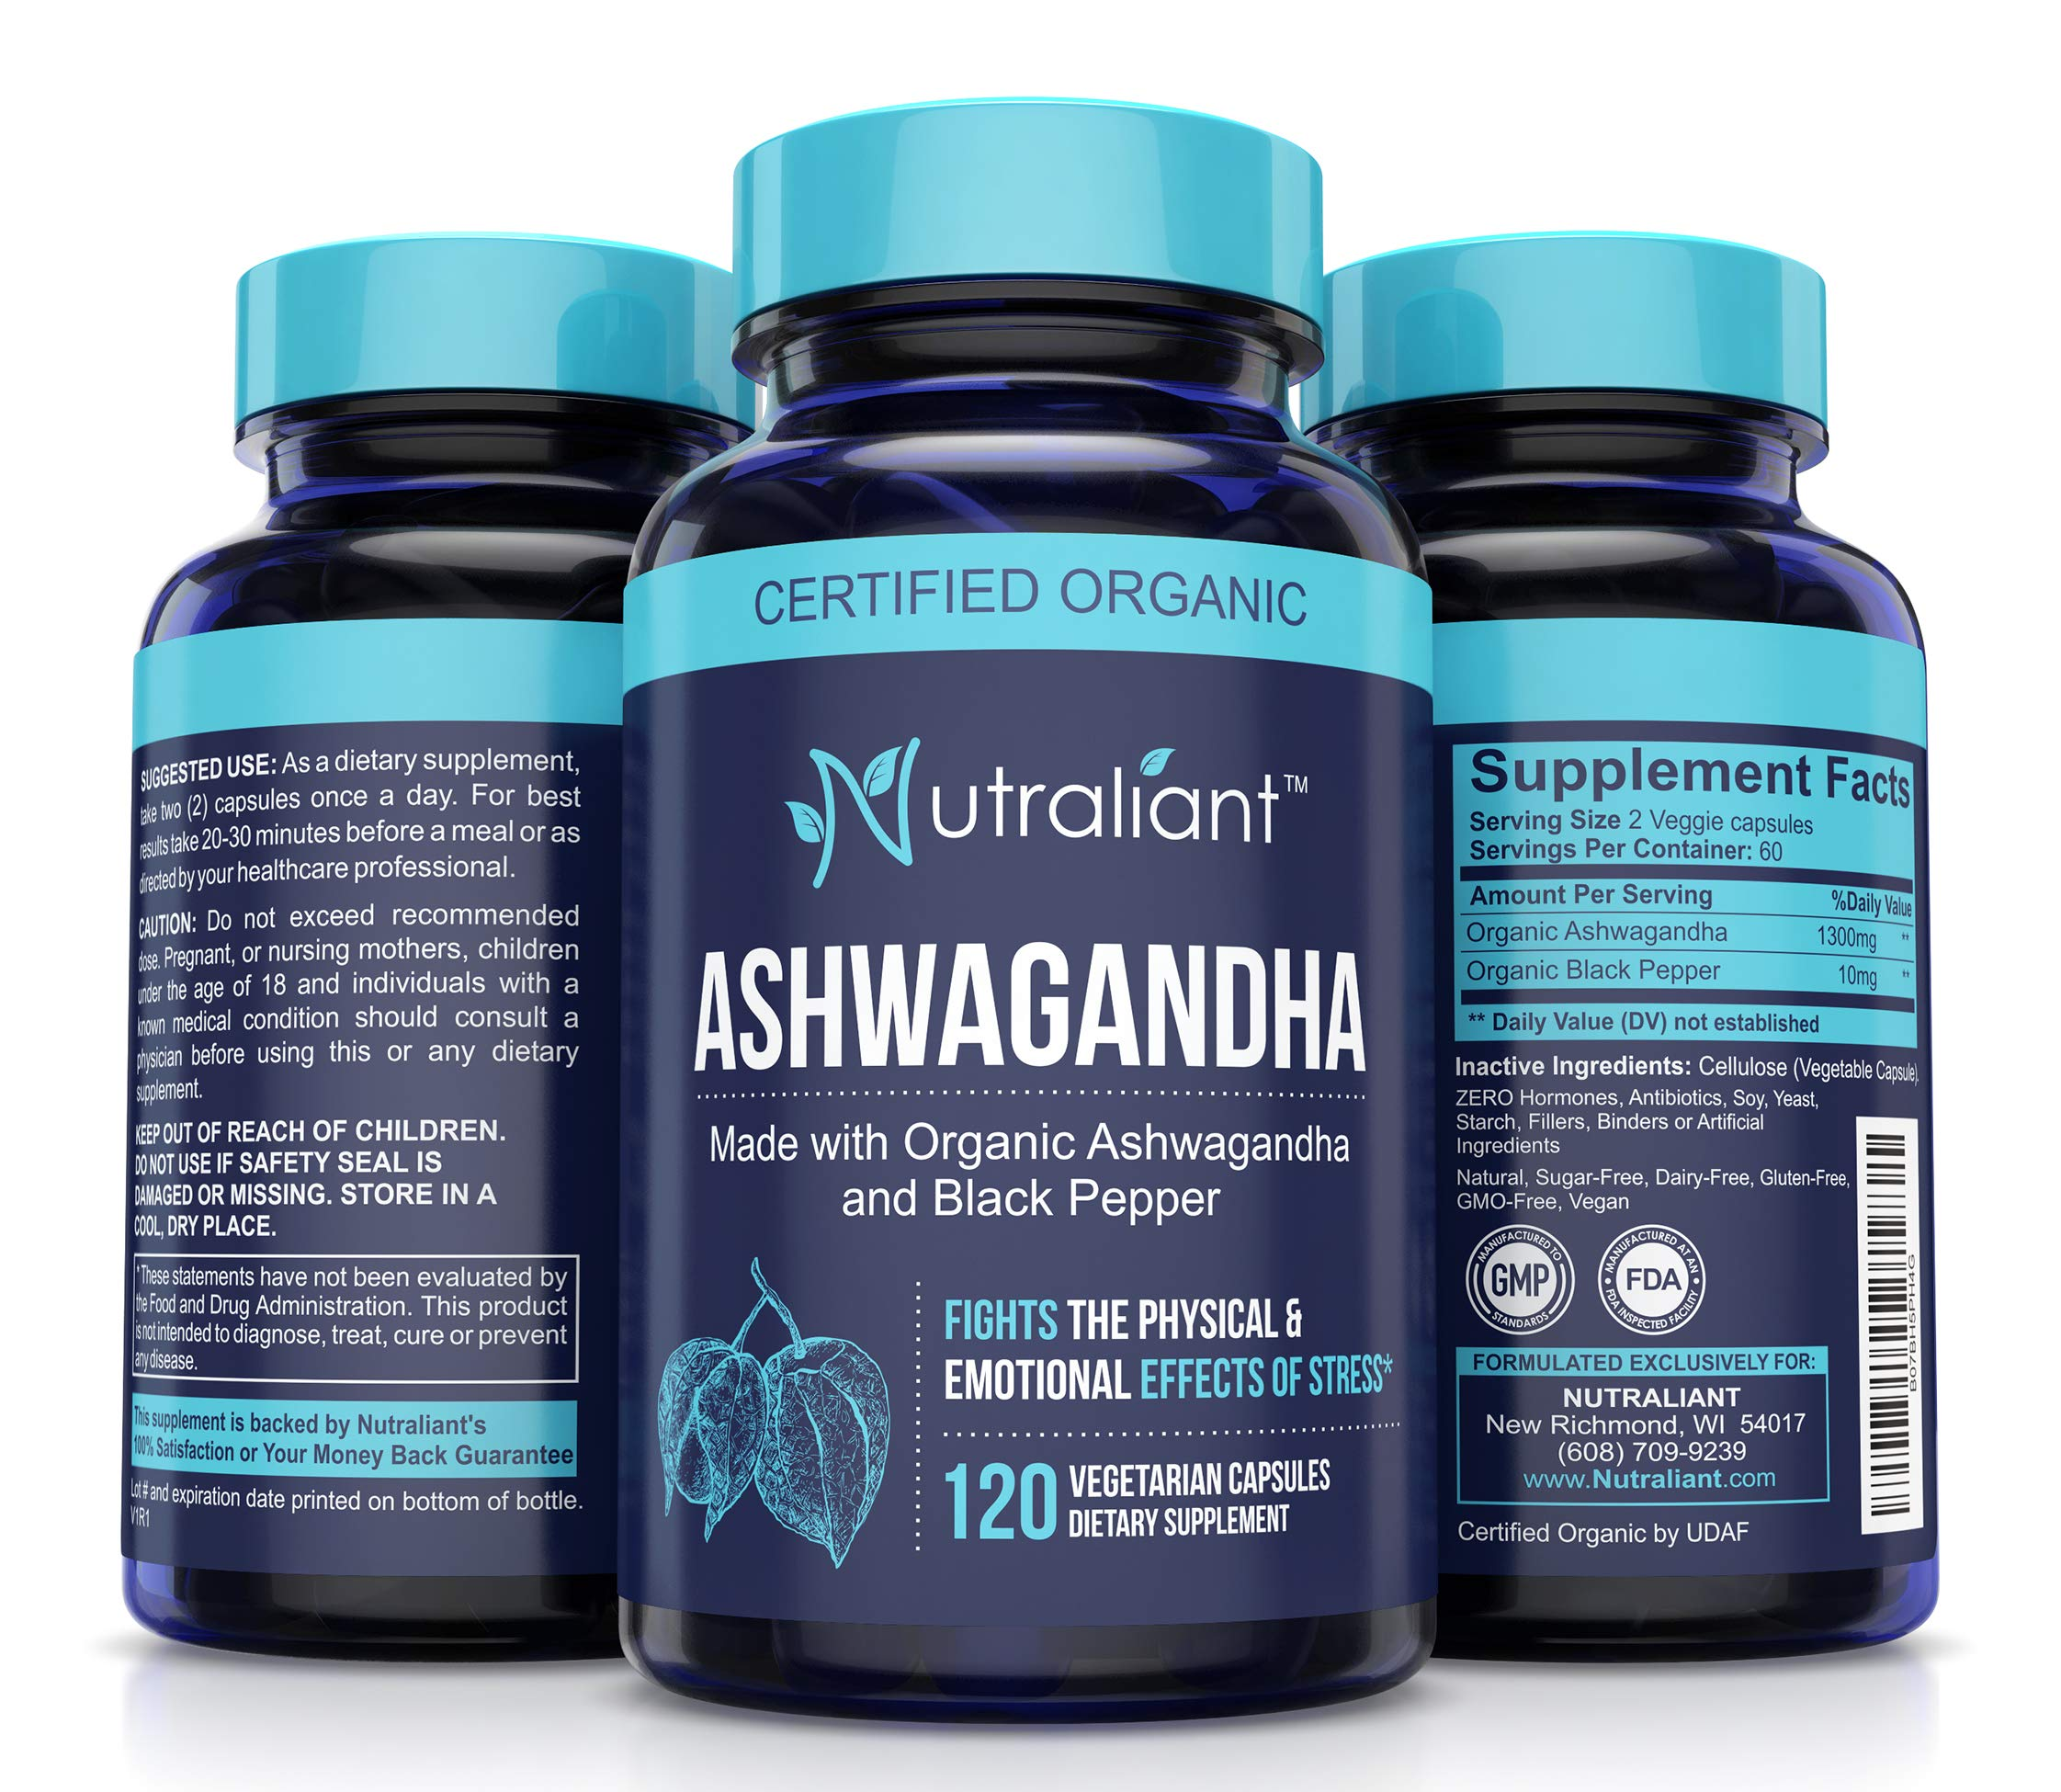 Ashwagandha Capsules for Anxiety Relief - 1300mg Pure Organic Ashwaganda Root Powder + Black Pepper Extract for Best Absorption. Stress, Adrenal, Thyroid, Mood & Sleep Supplement - 120 Veggie Caps by Nutraliant